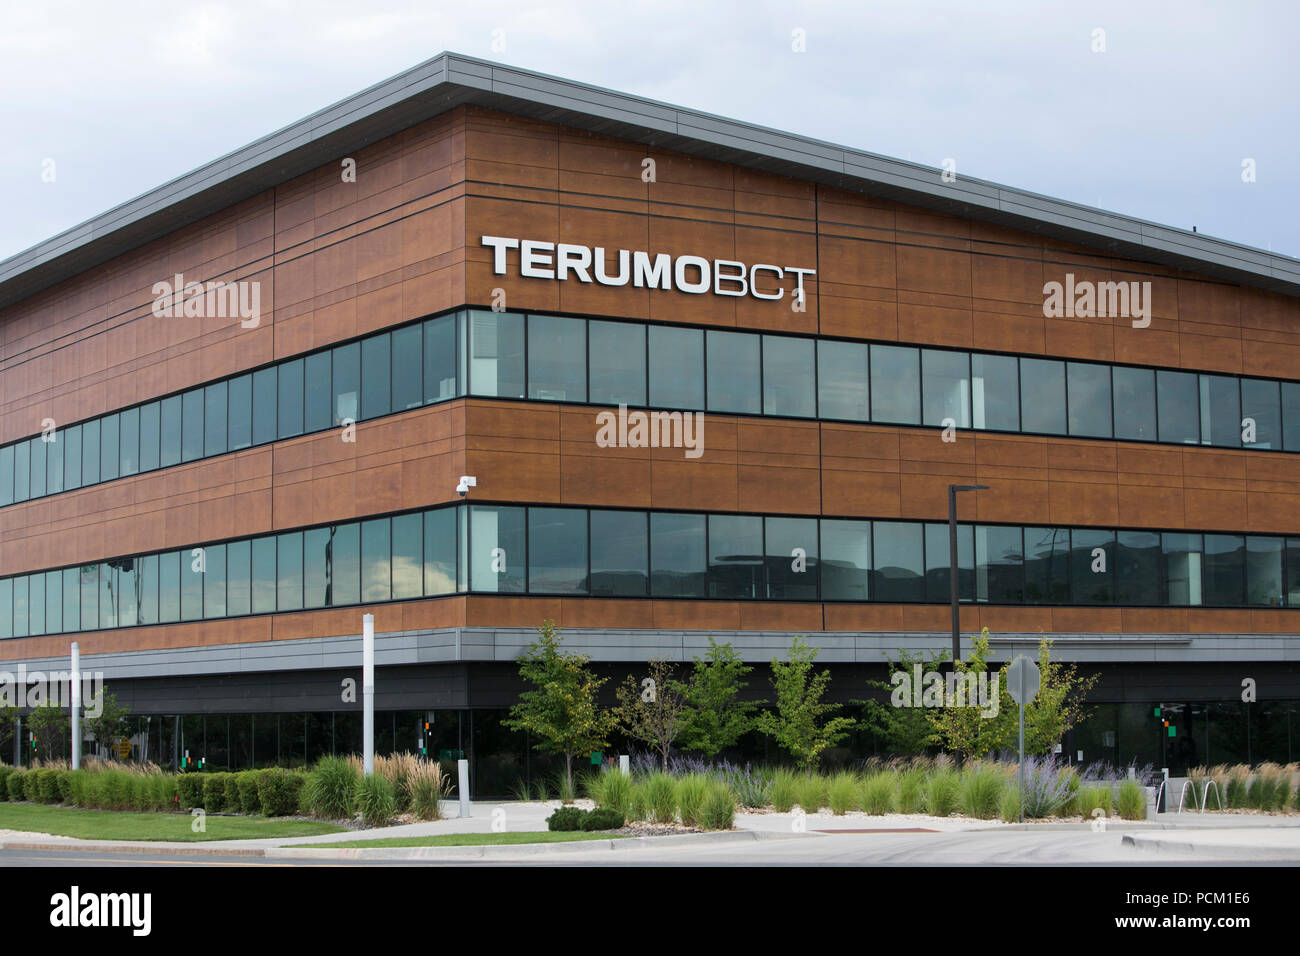 A logo sign outside of the headquarters of Terumo BCT in Lakewood, Colorado, on July 22, 2018. - Stock Image